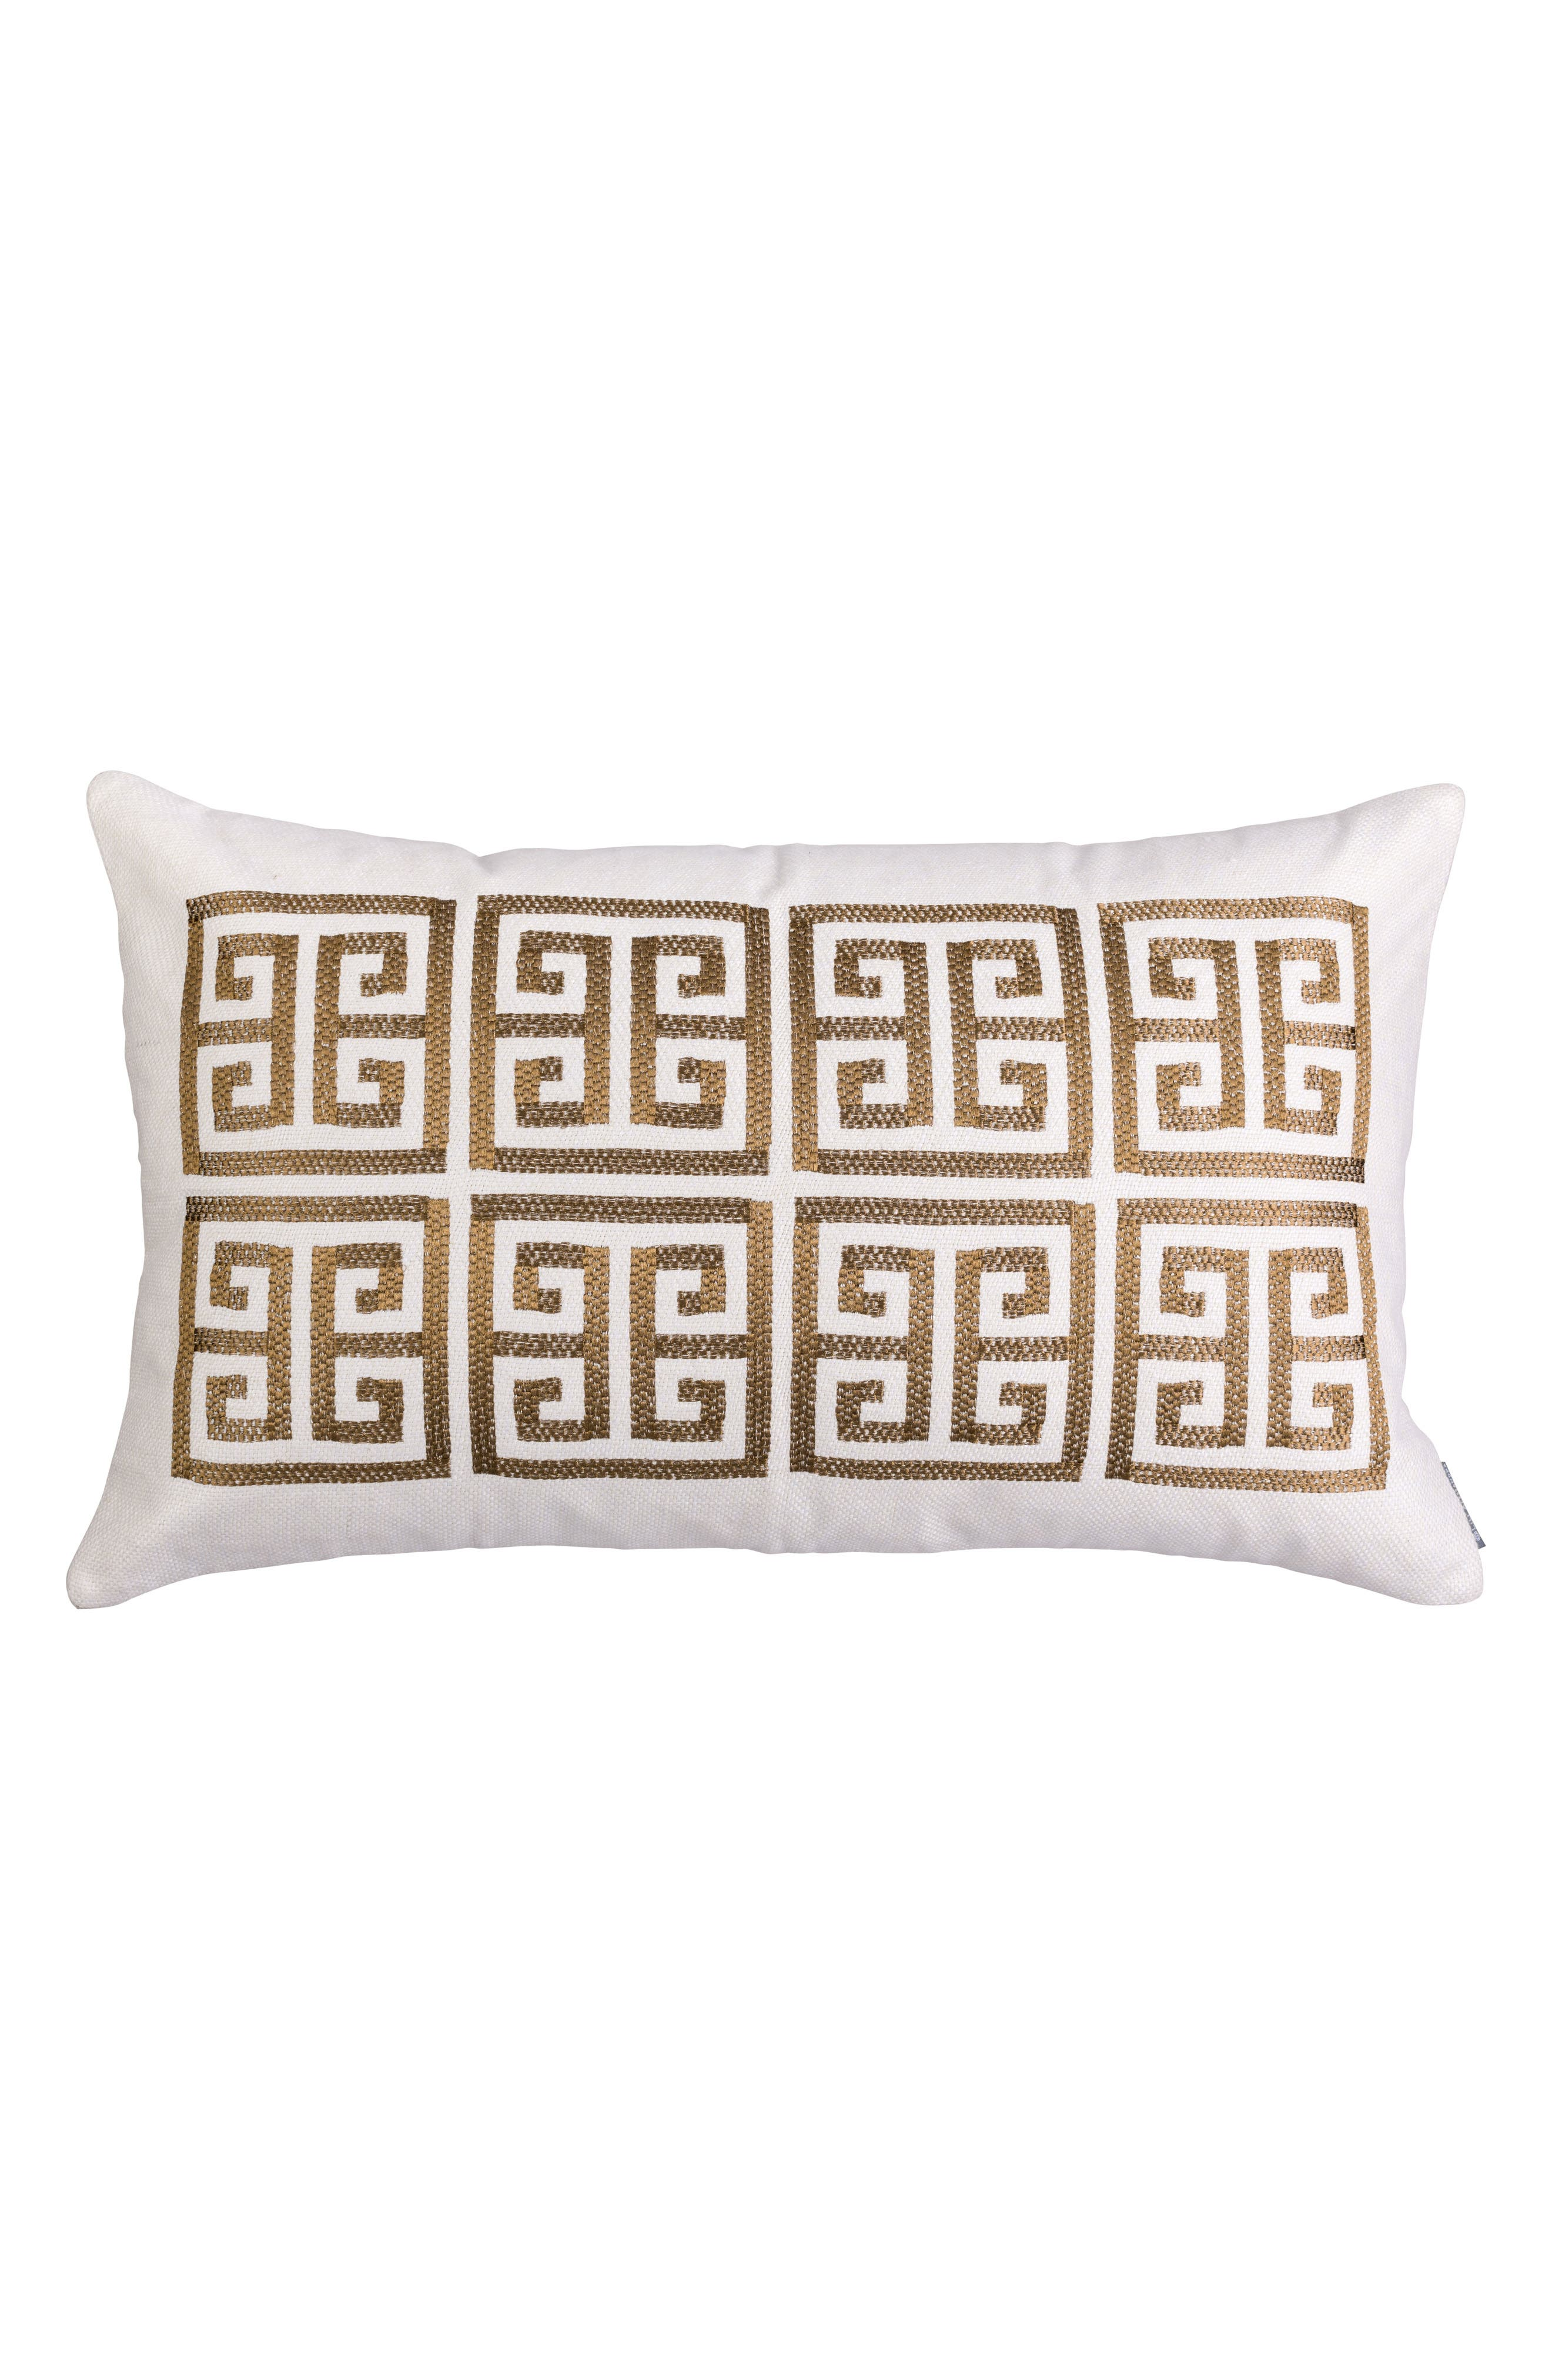 Guy Basket Weave Embroidery Accent Pillow,                         Main,                         color, Gold